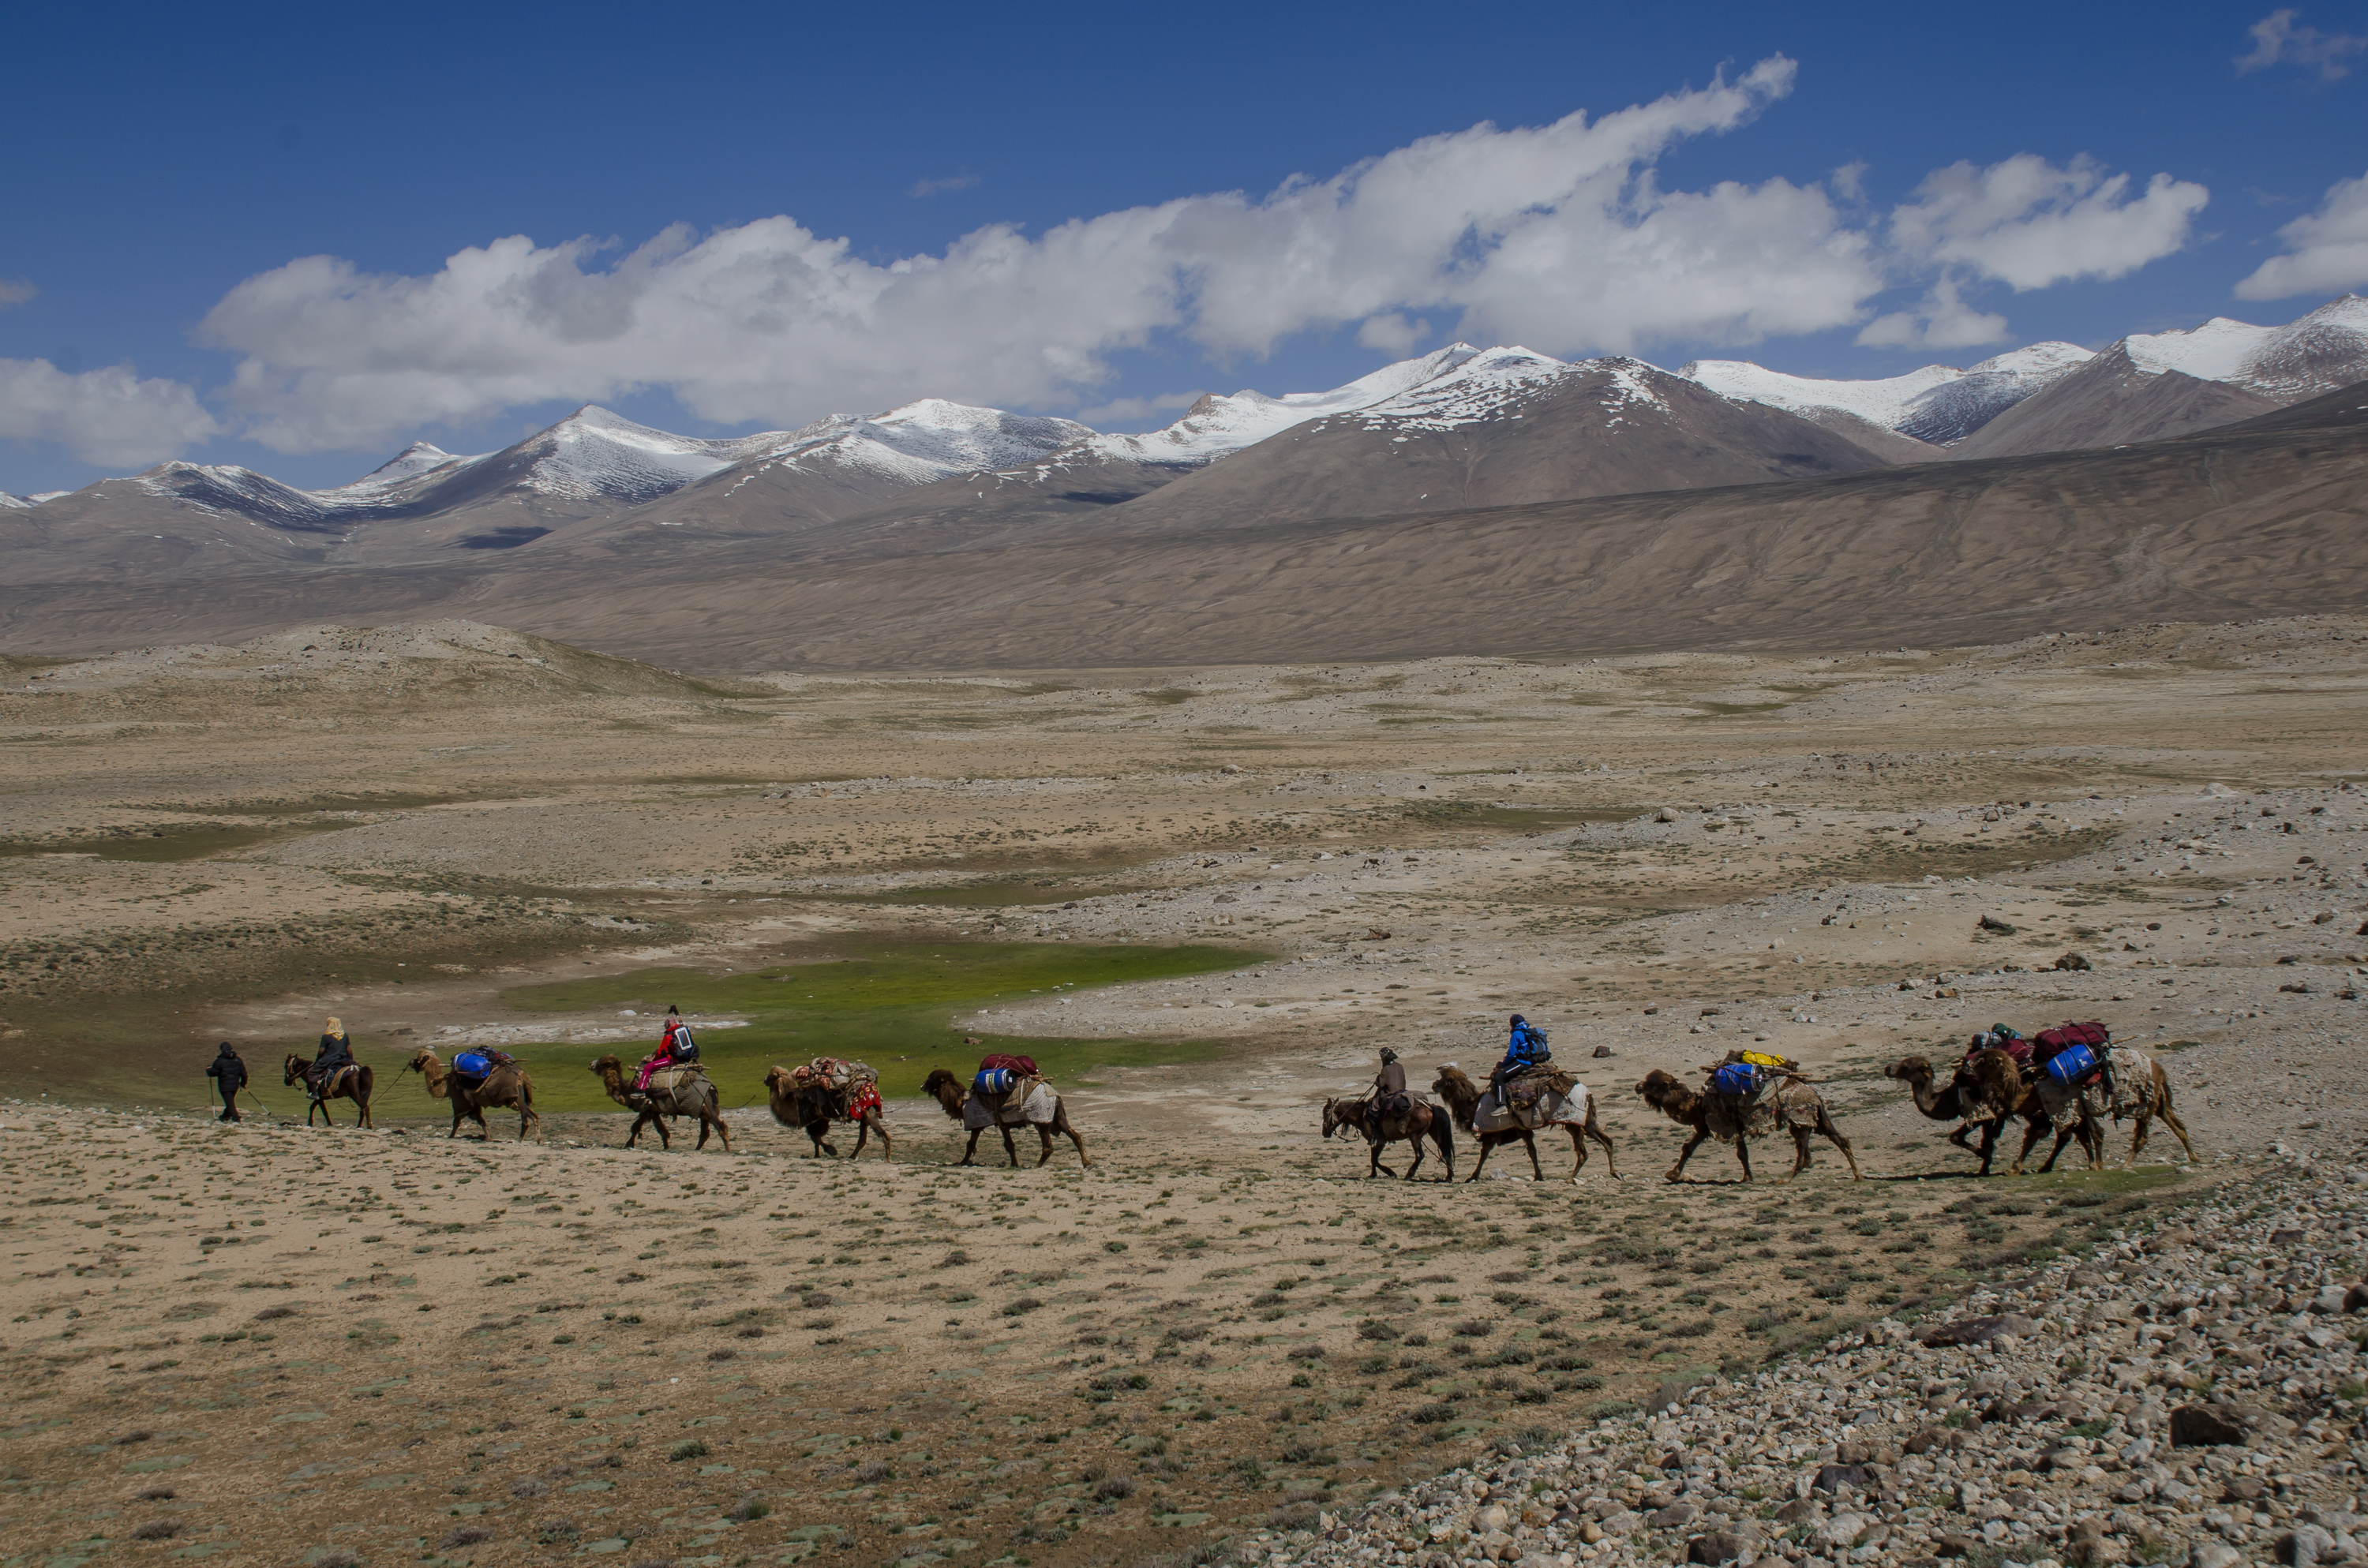 Caravans in Big Pamir